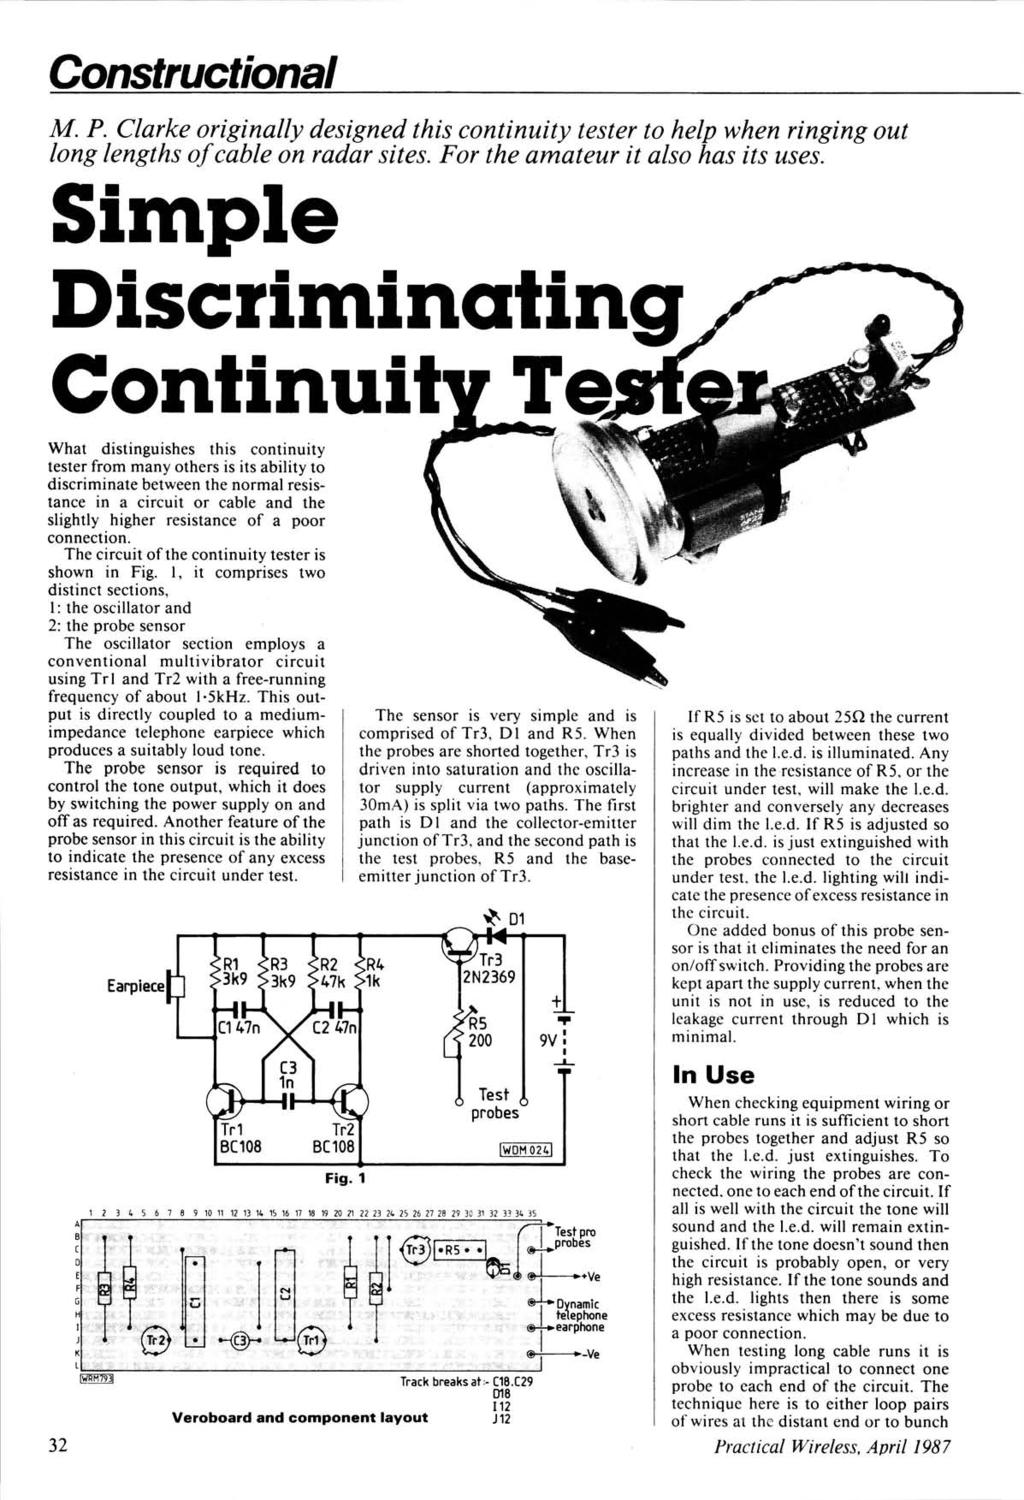 Pltjsimple Discriminating Continuity Tester Pdf Circuit Diagram Constructional M P Clarke Originally Designed This To Help When Ringing Out Long Lengths Of